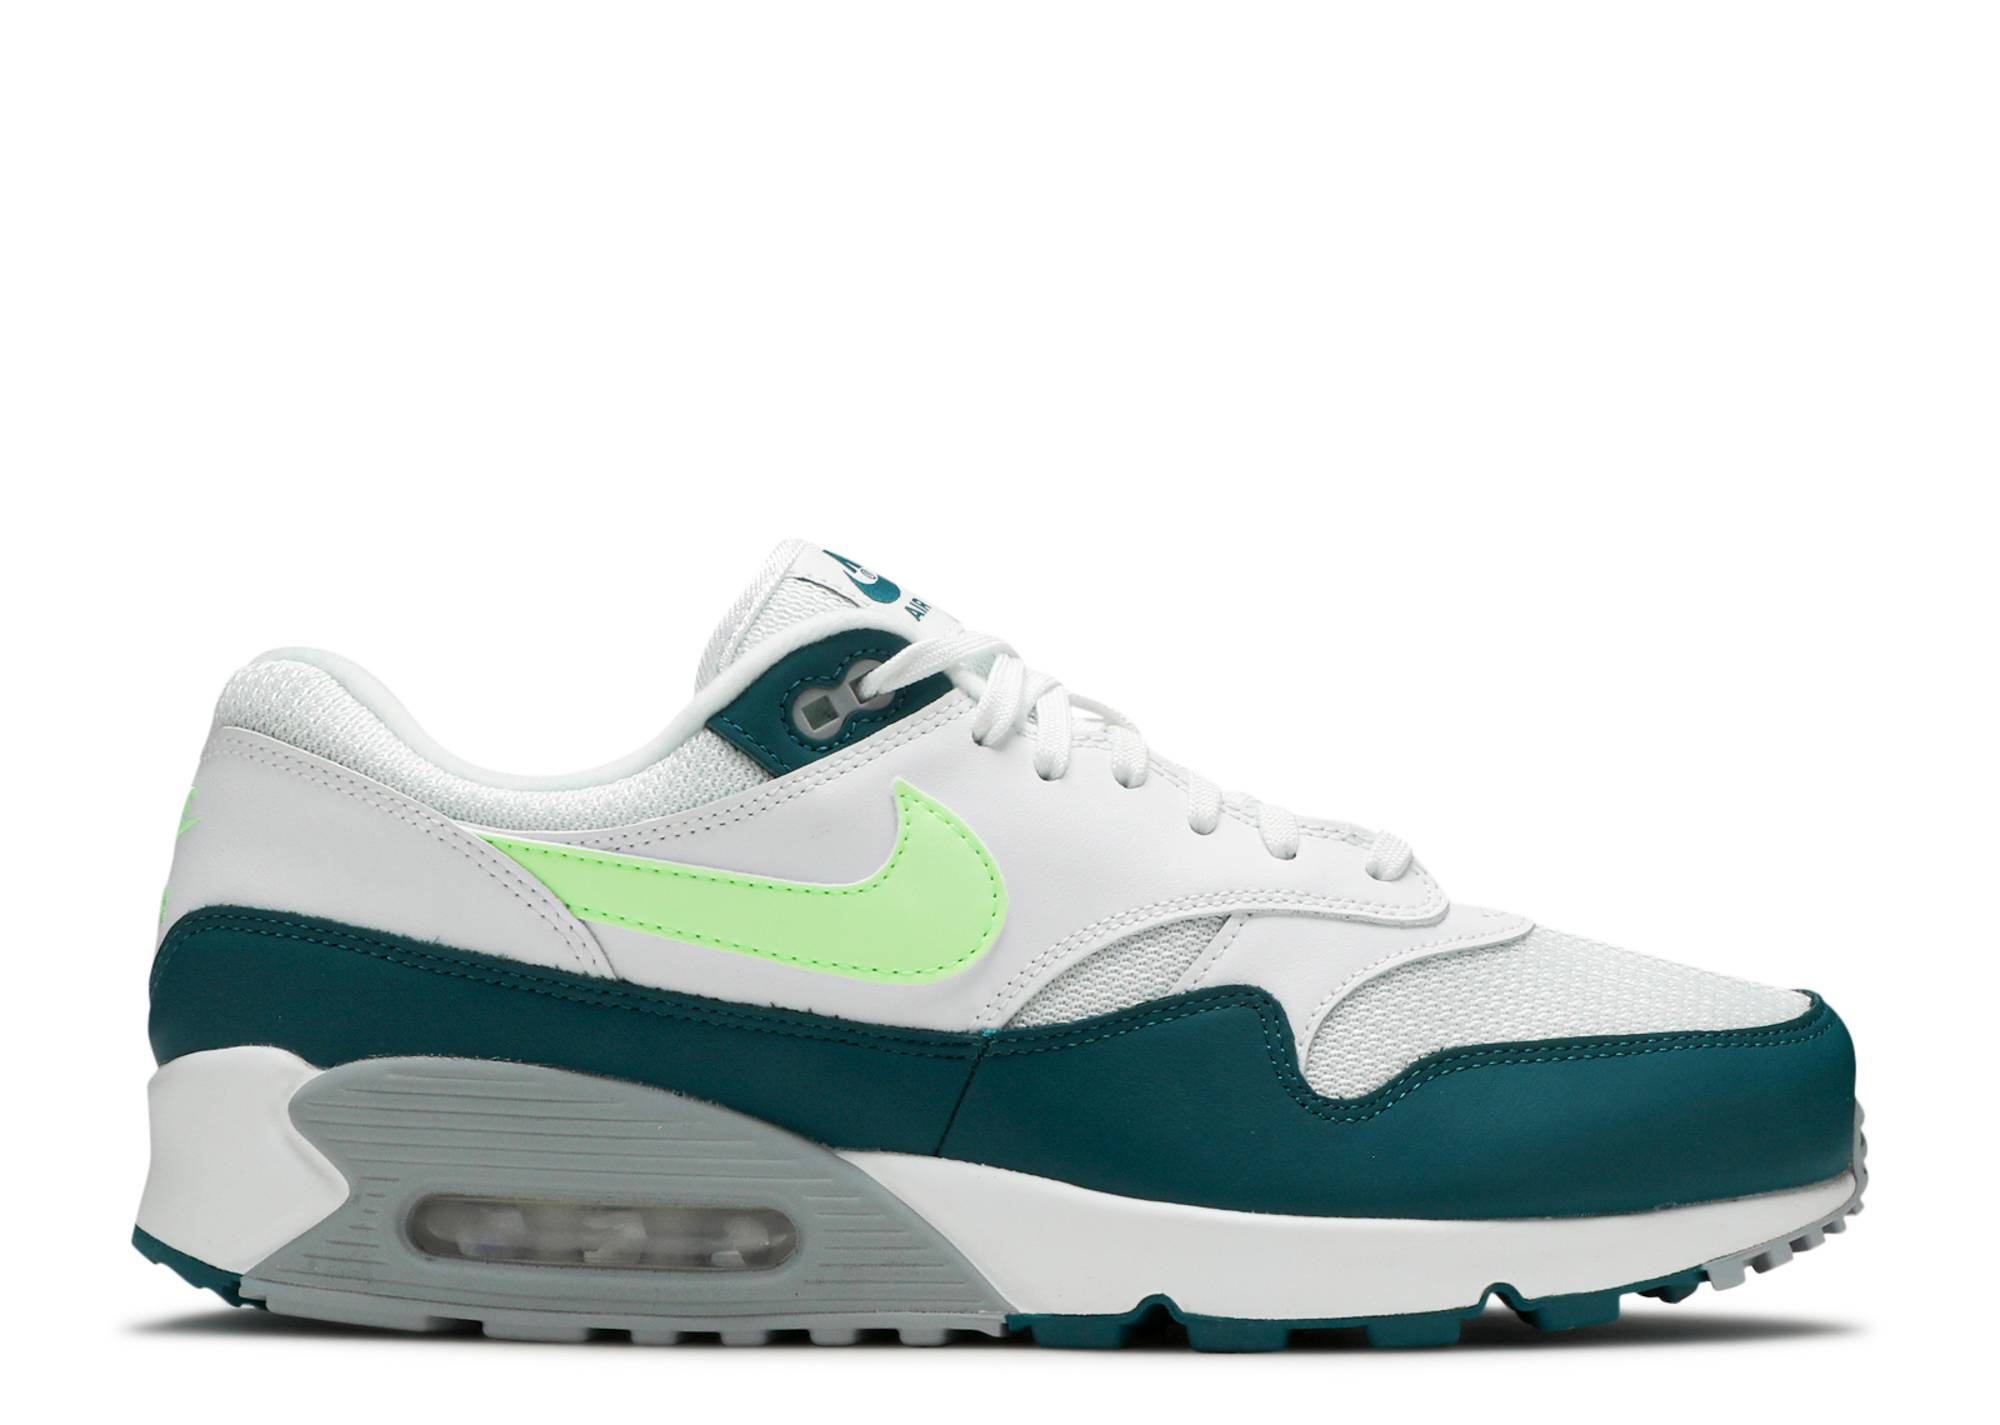 Retros We'd Like to See for the Nike Air Max 90's… Sneaker